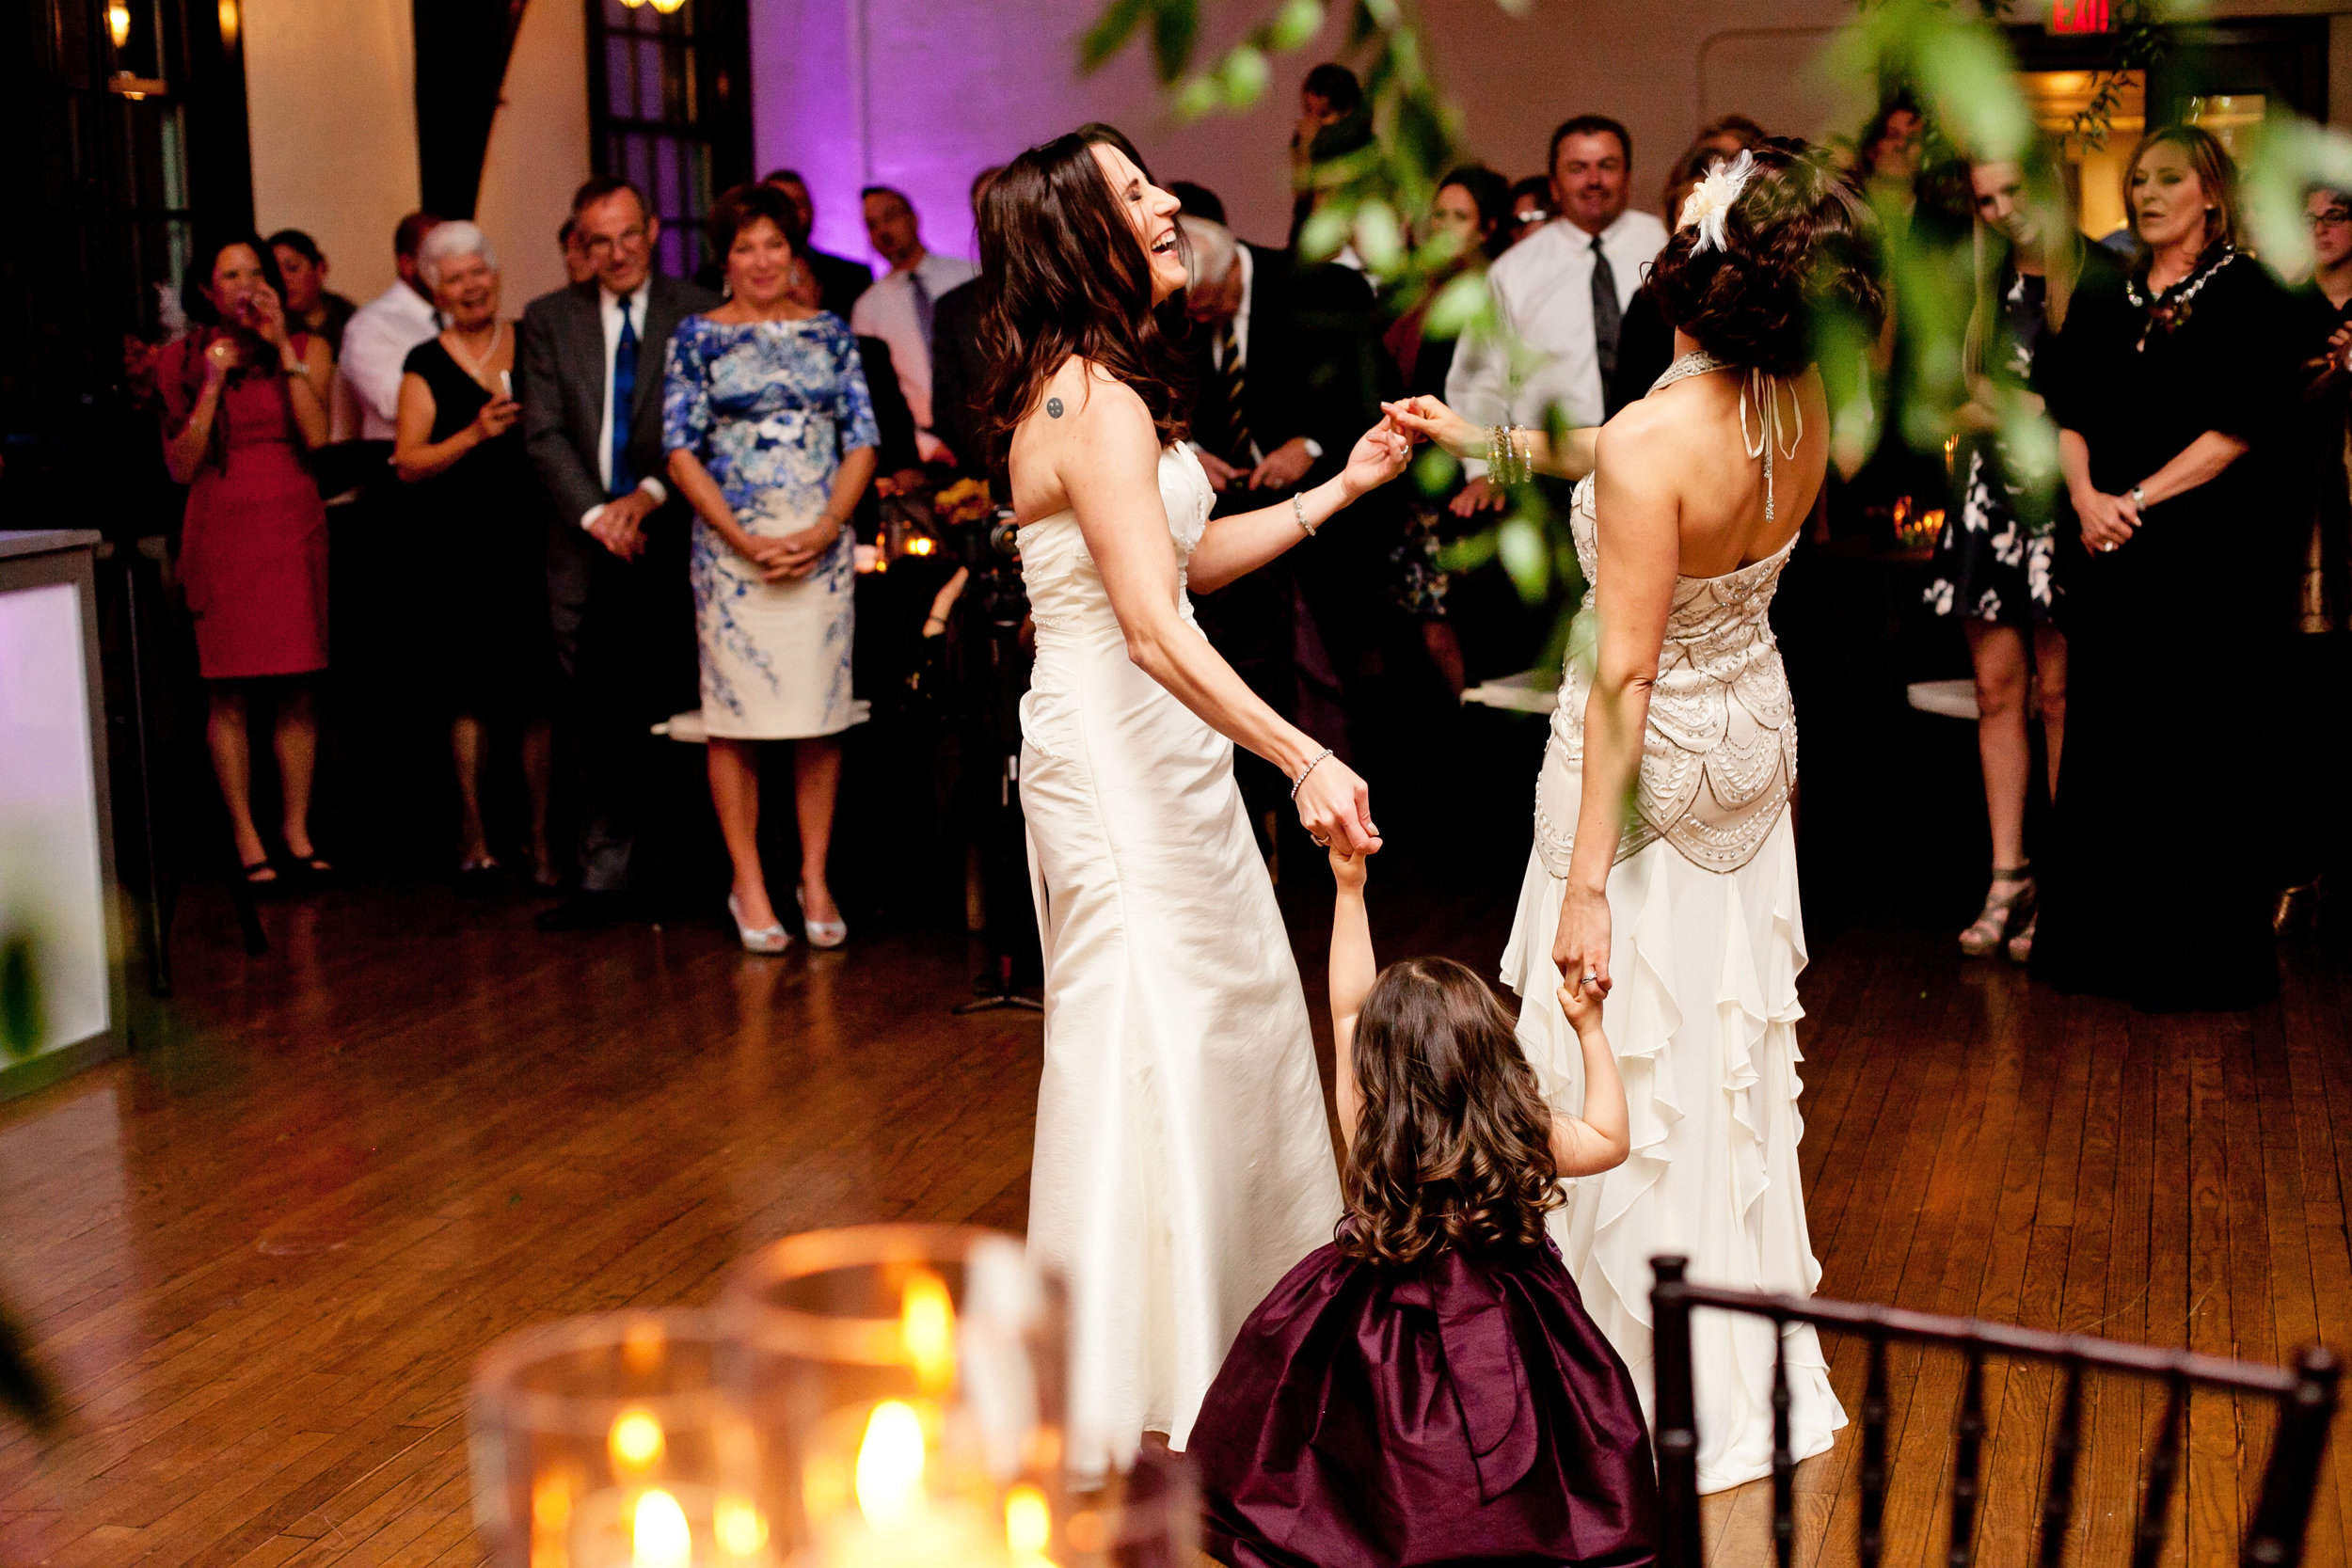 51 first dance bride and bride dancing two brides first dance brides dance with flower girl special first dance Life Design Events.jpg